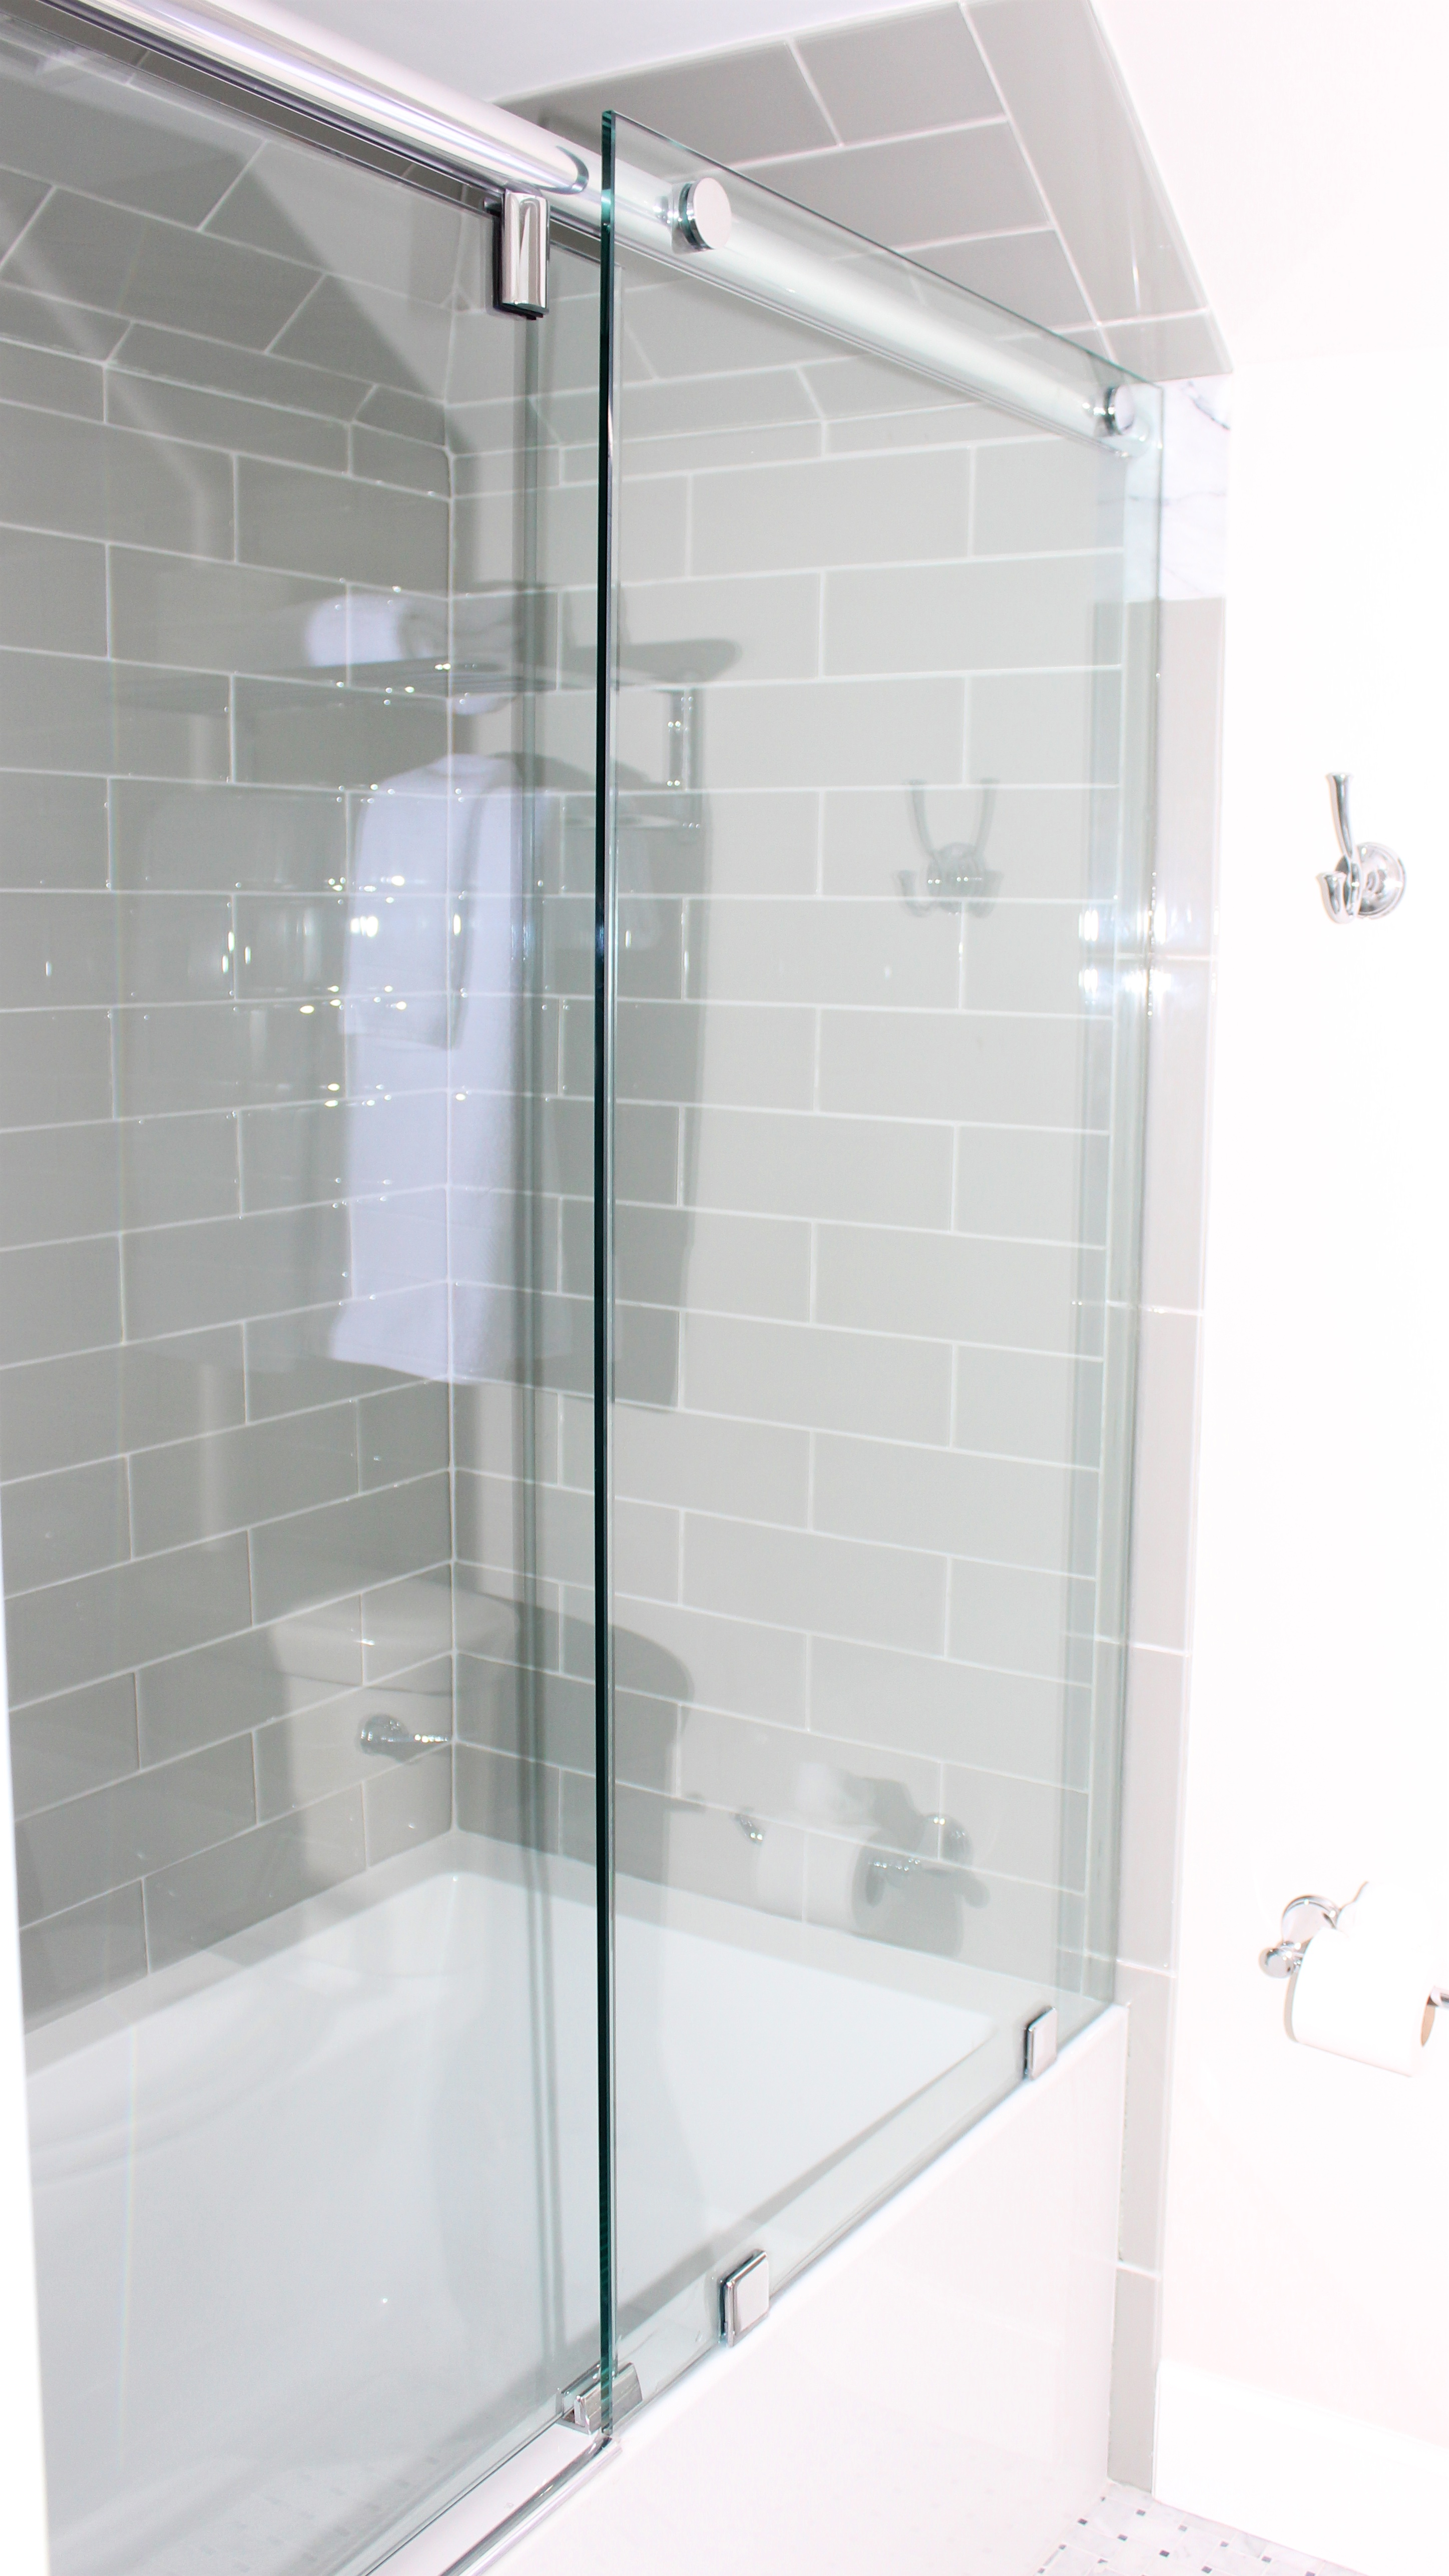 There is a sky light (not seen) and a tiled tub/shower.